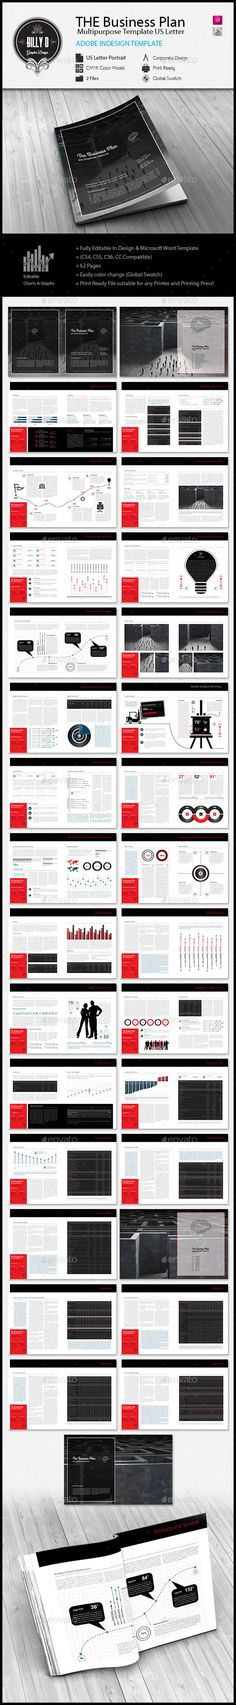 THE Business Plan Multipurpose Template US Letter - Proposals & Invoices Stationery Business Plan Template, Brochure Template, Business Presentation, Presentation Templates, Arch Model, Web Design Tips, Business Proposal, Publication Design, Graphic Design Templates